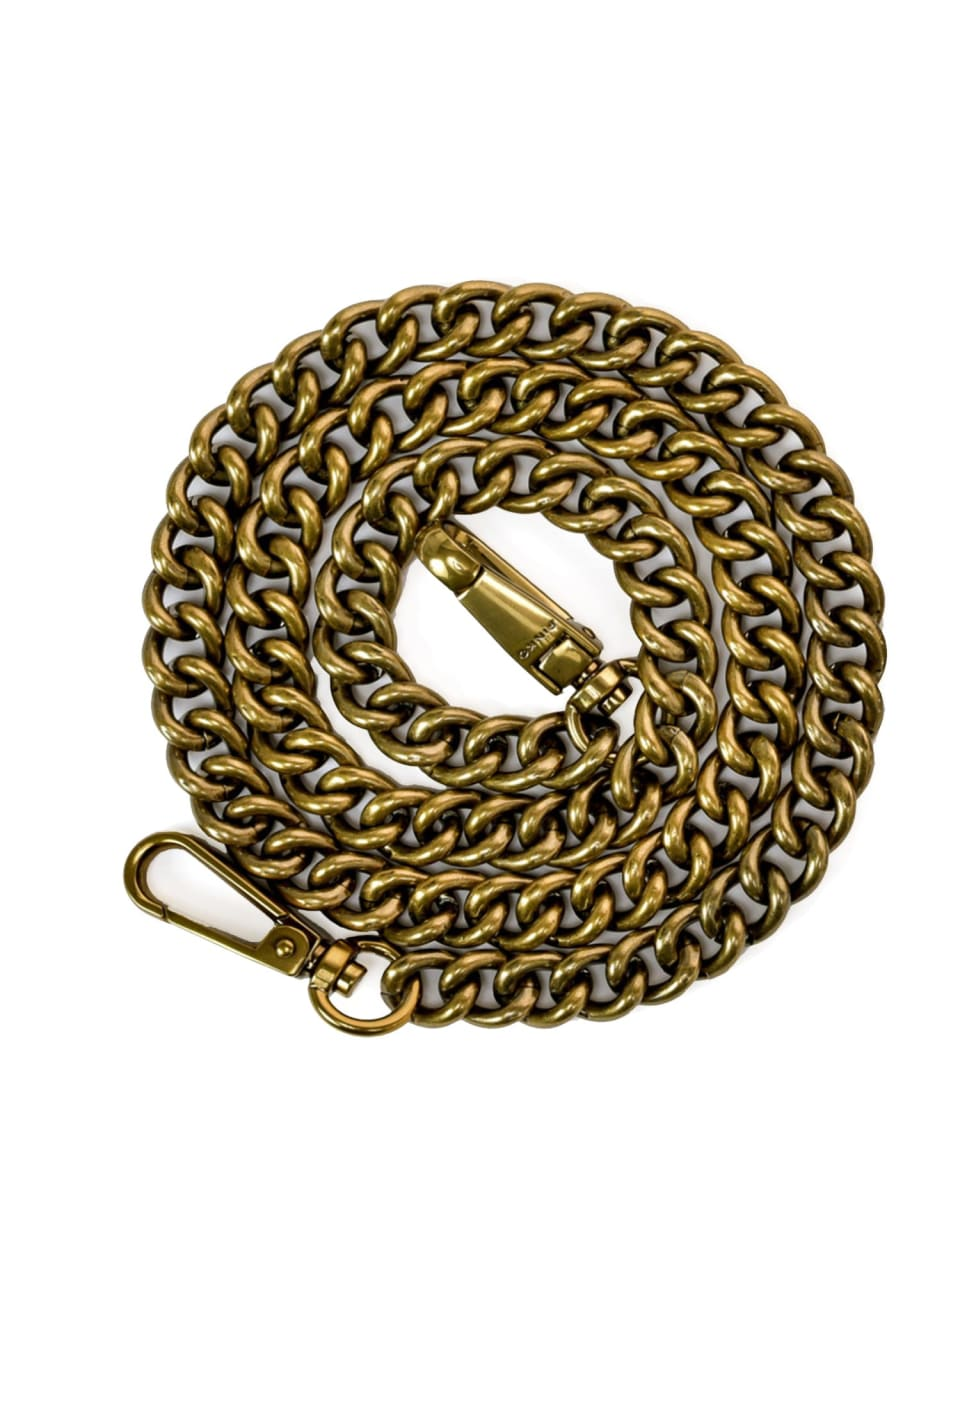 Metal chain shoulder strap